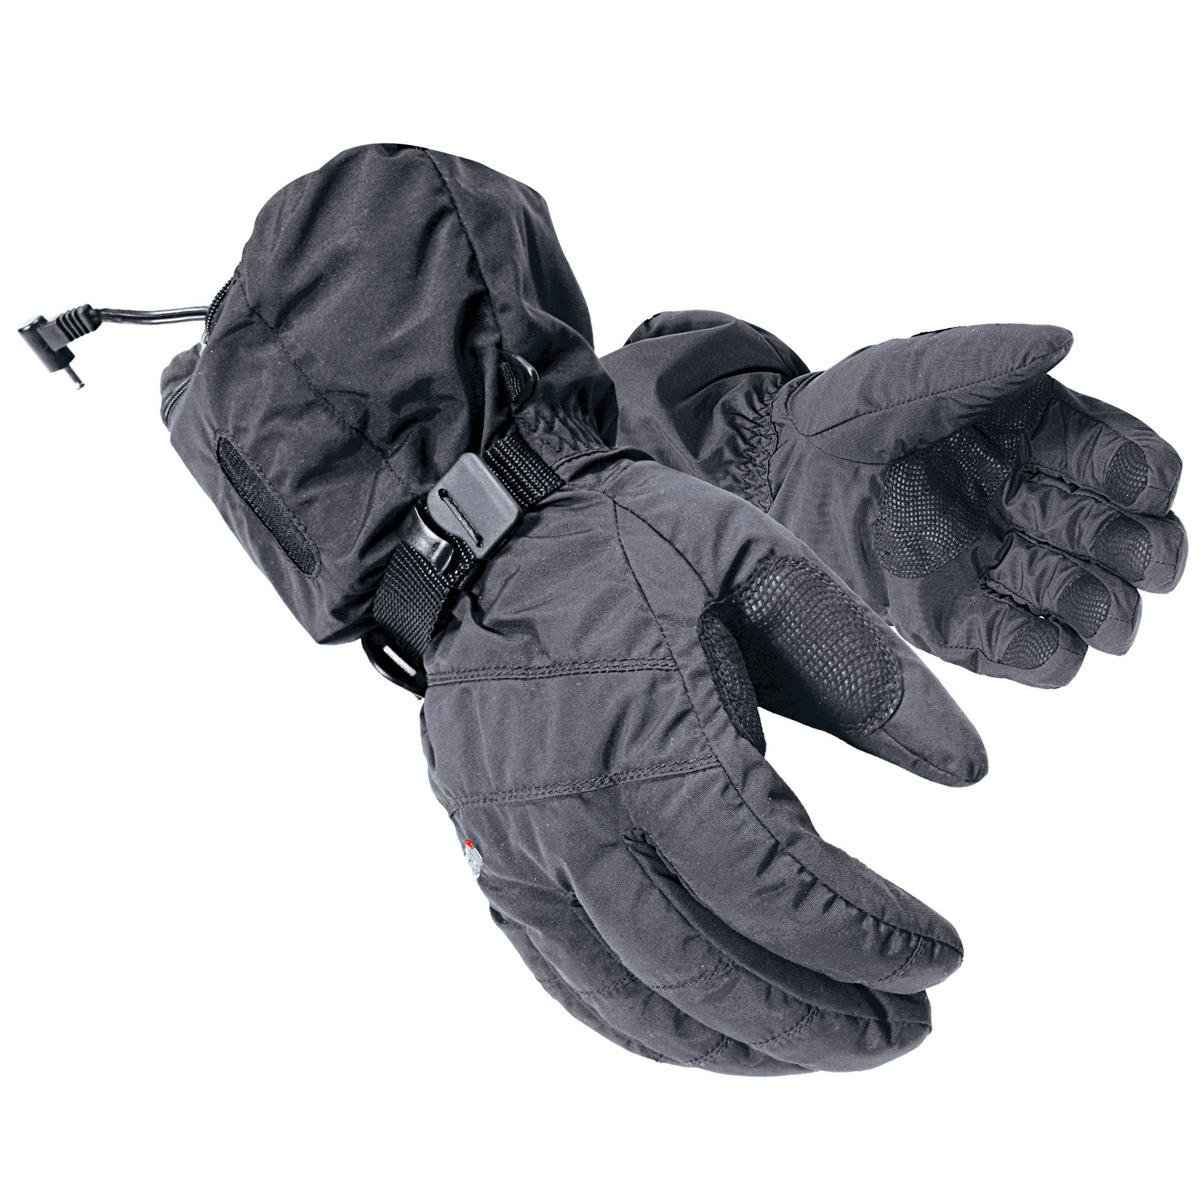 Motorcycle gloves tight or loose -